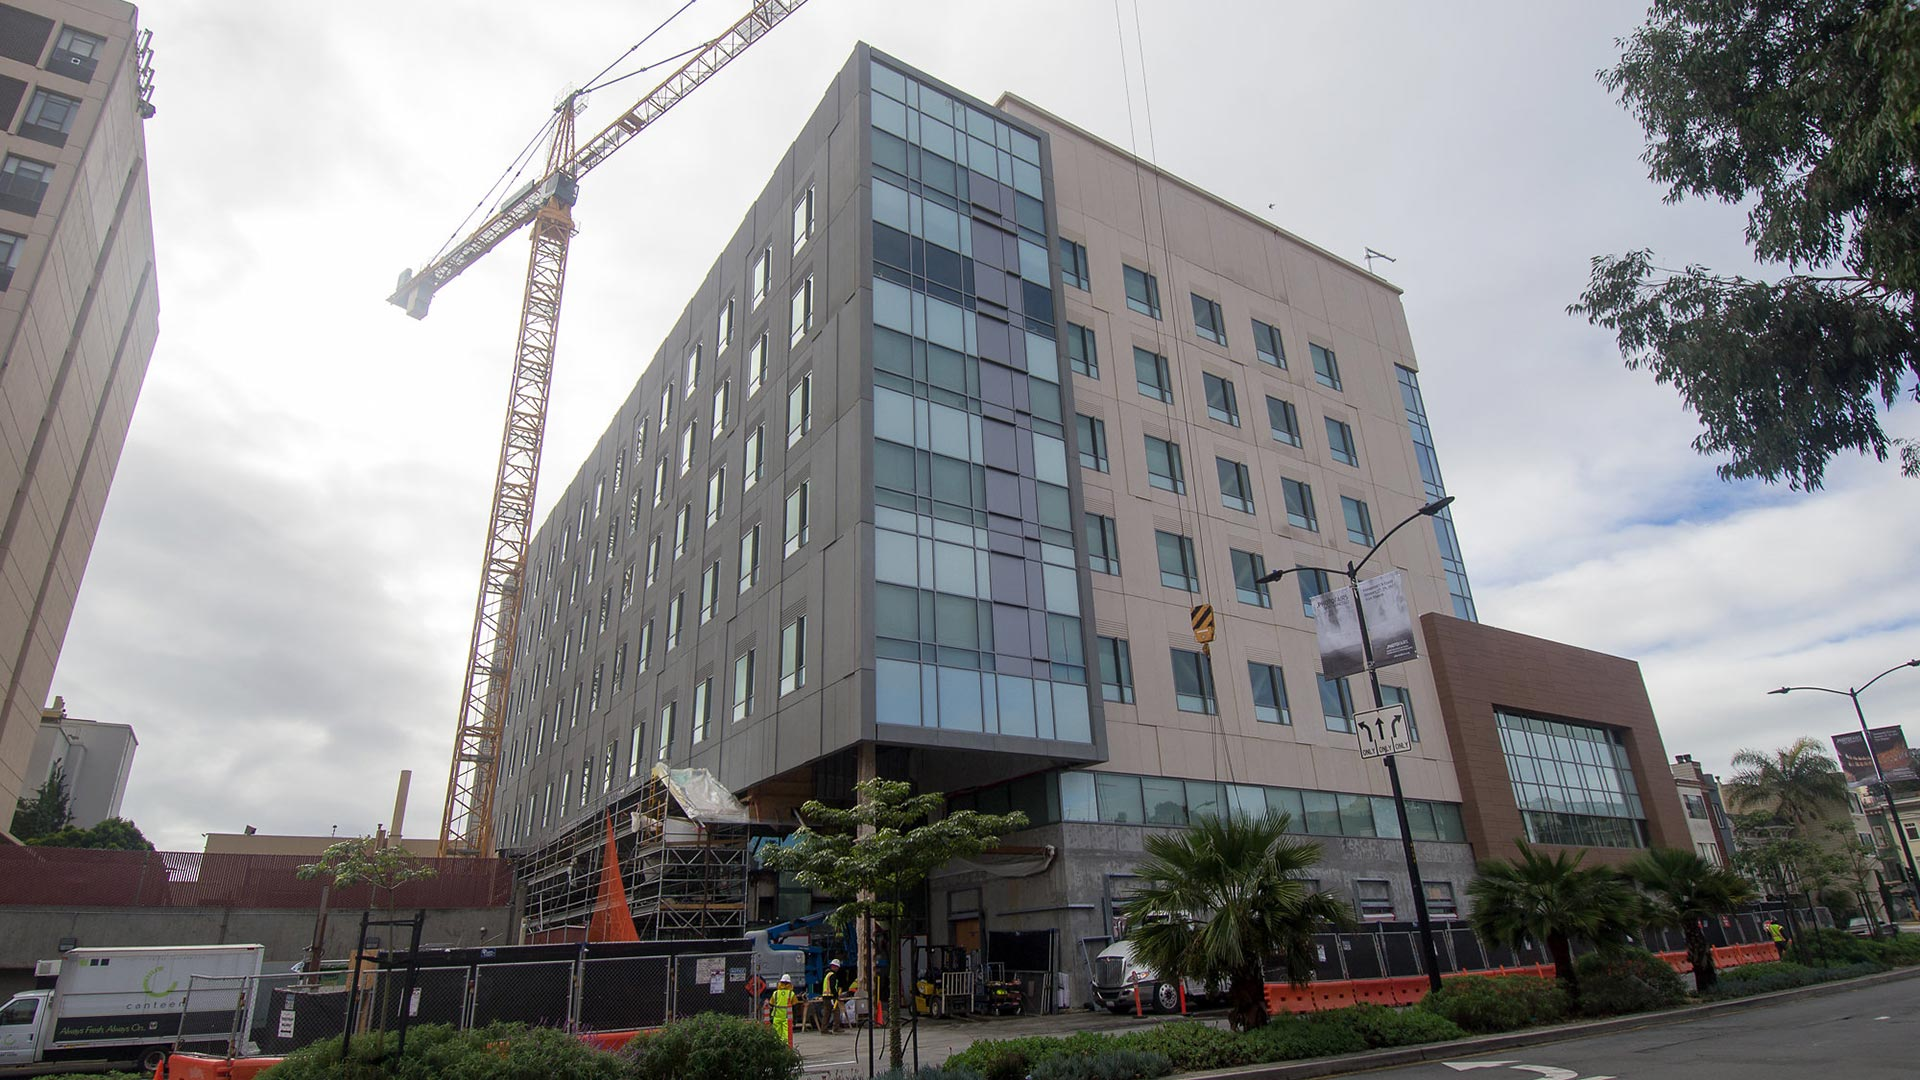 St. Luke's Hospital - San Francisco - Under Construction